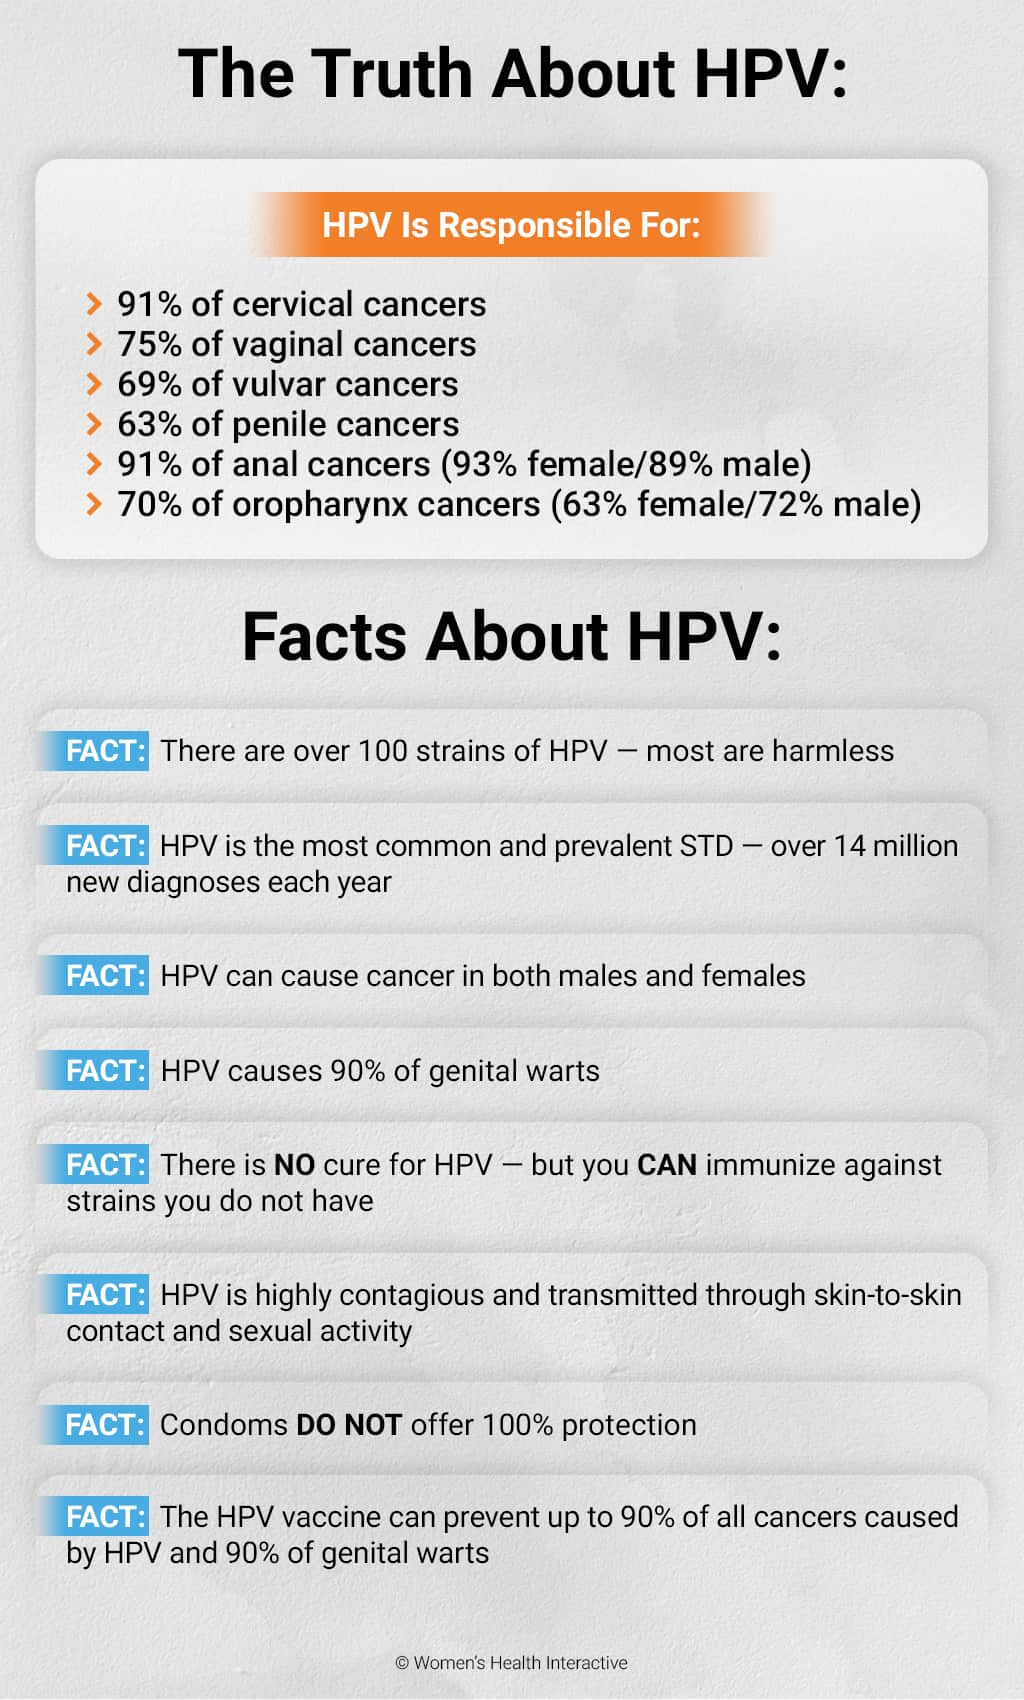 hpv cure in males